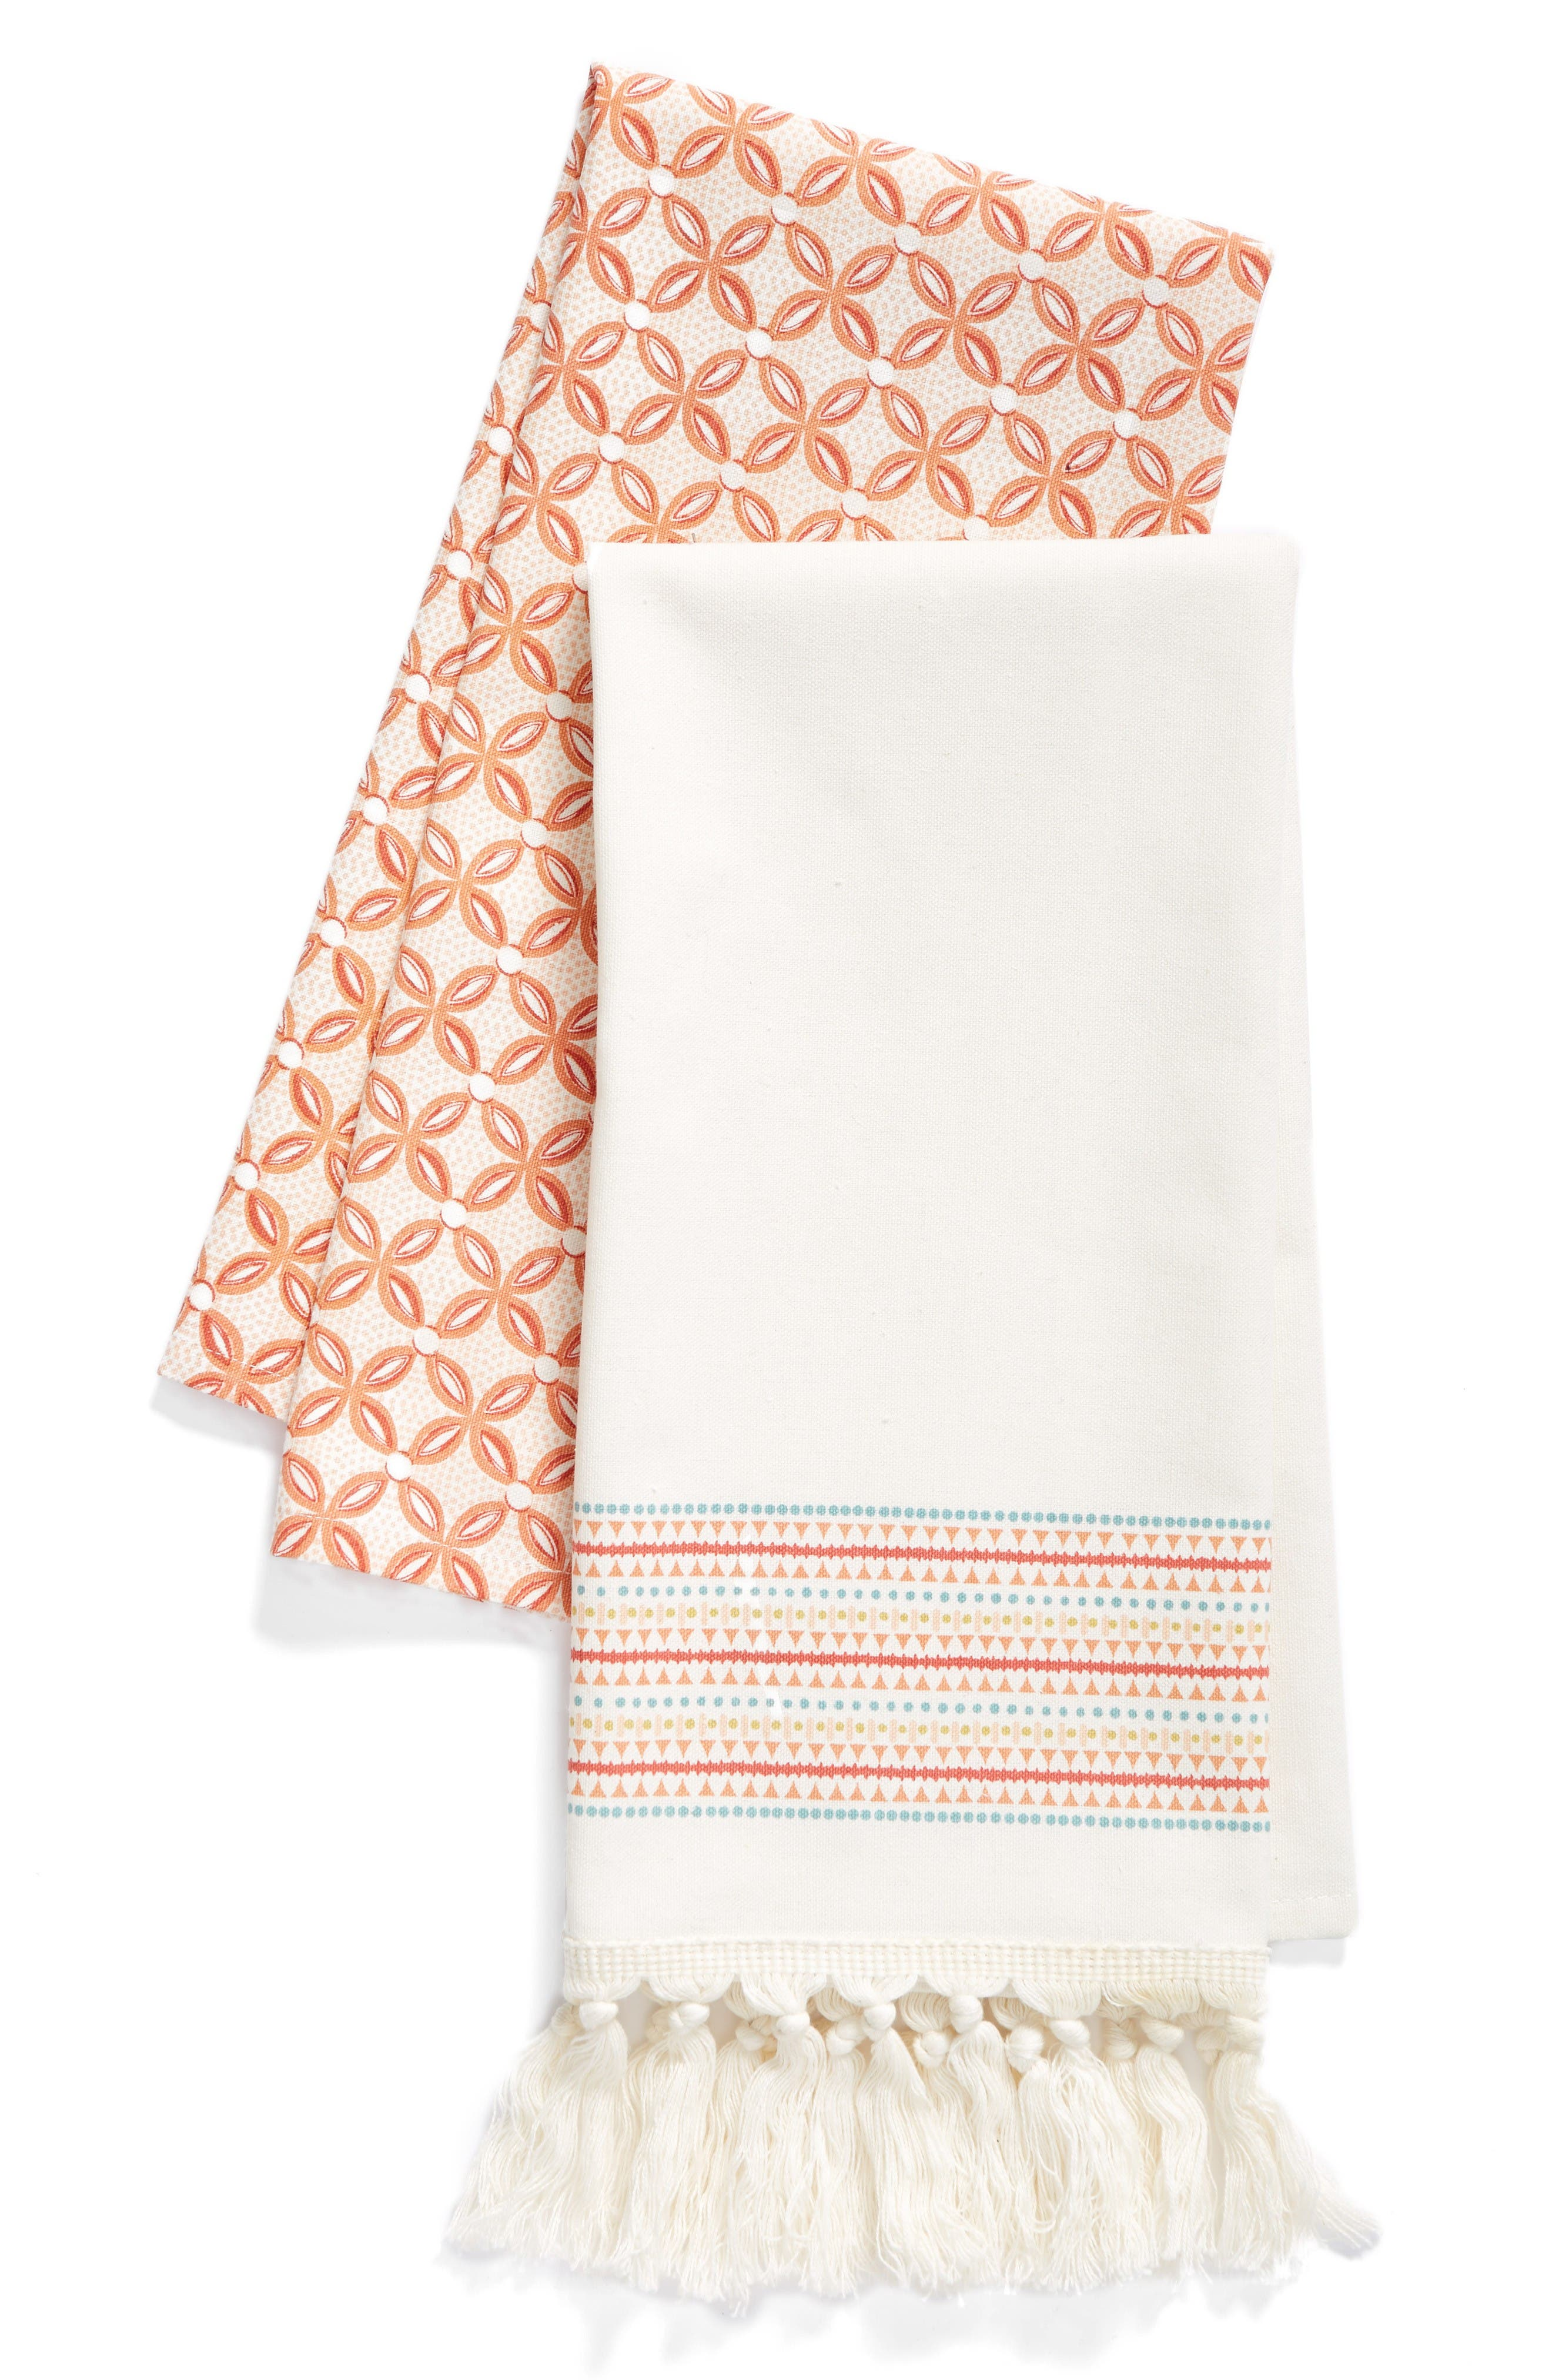 Main Image - Levtex Set of 2 Dish Towels